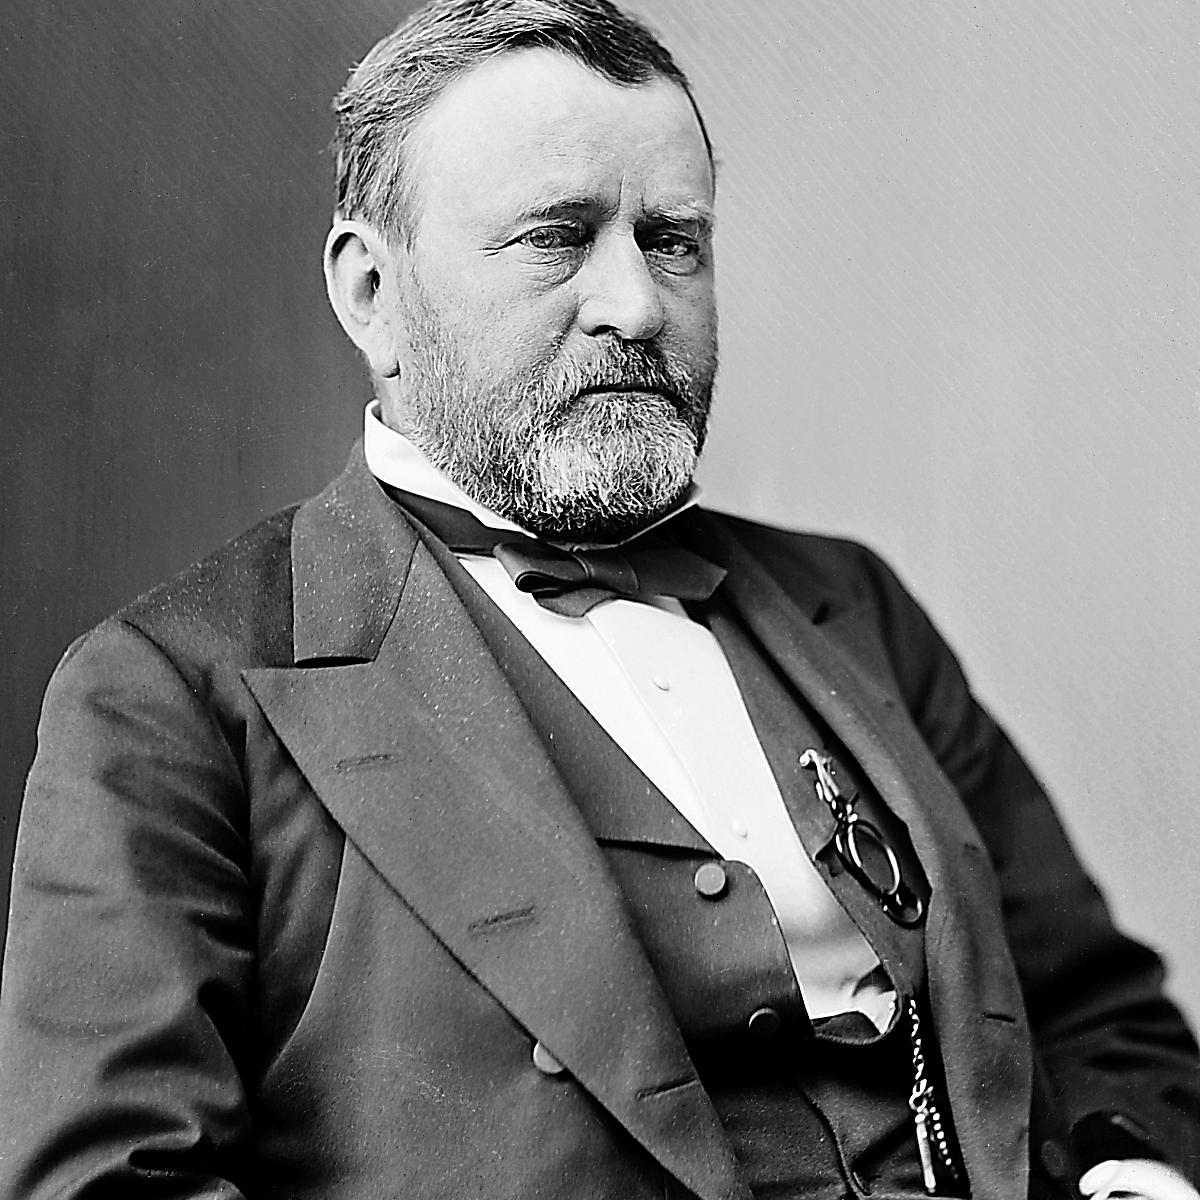 Ulysses S. Grant was among the youngest U.S. presidents in history.